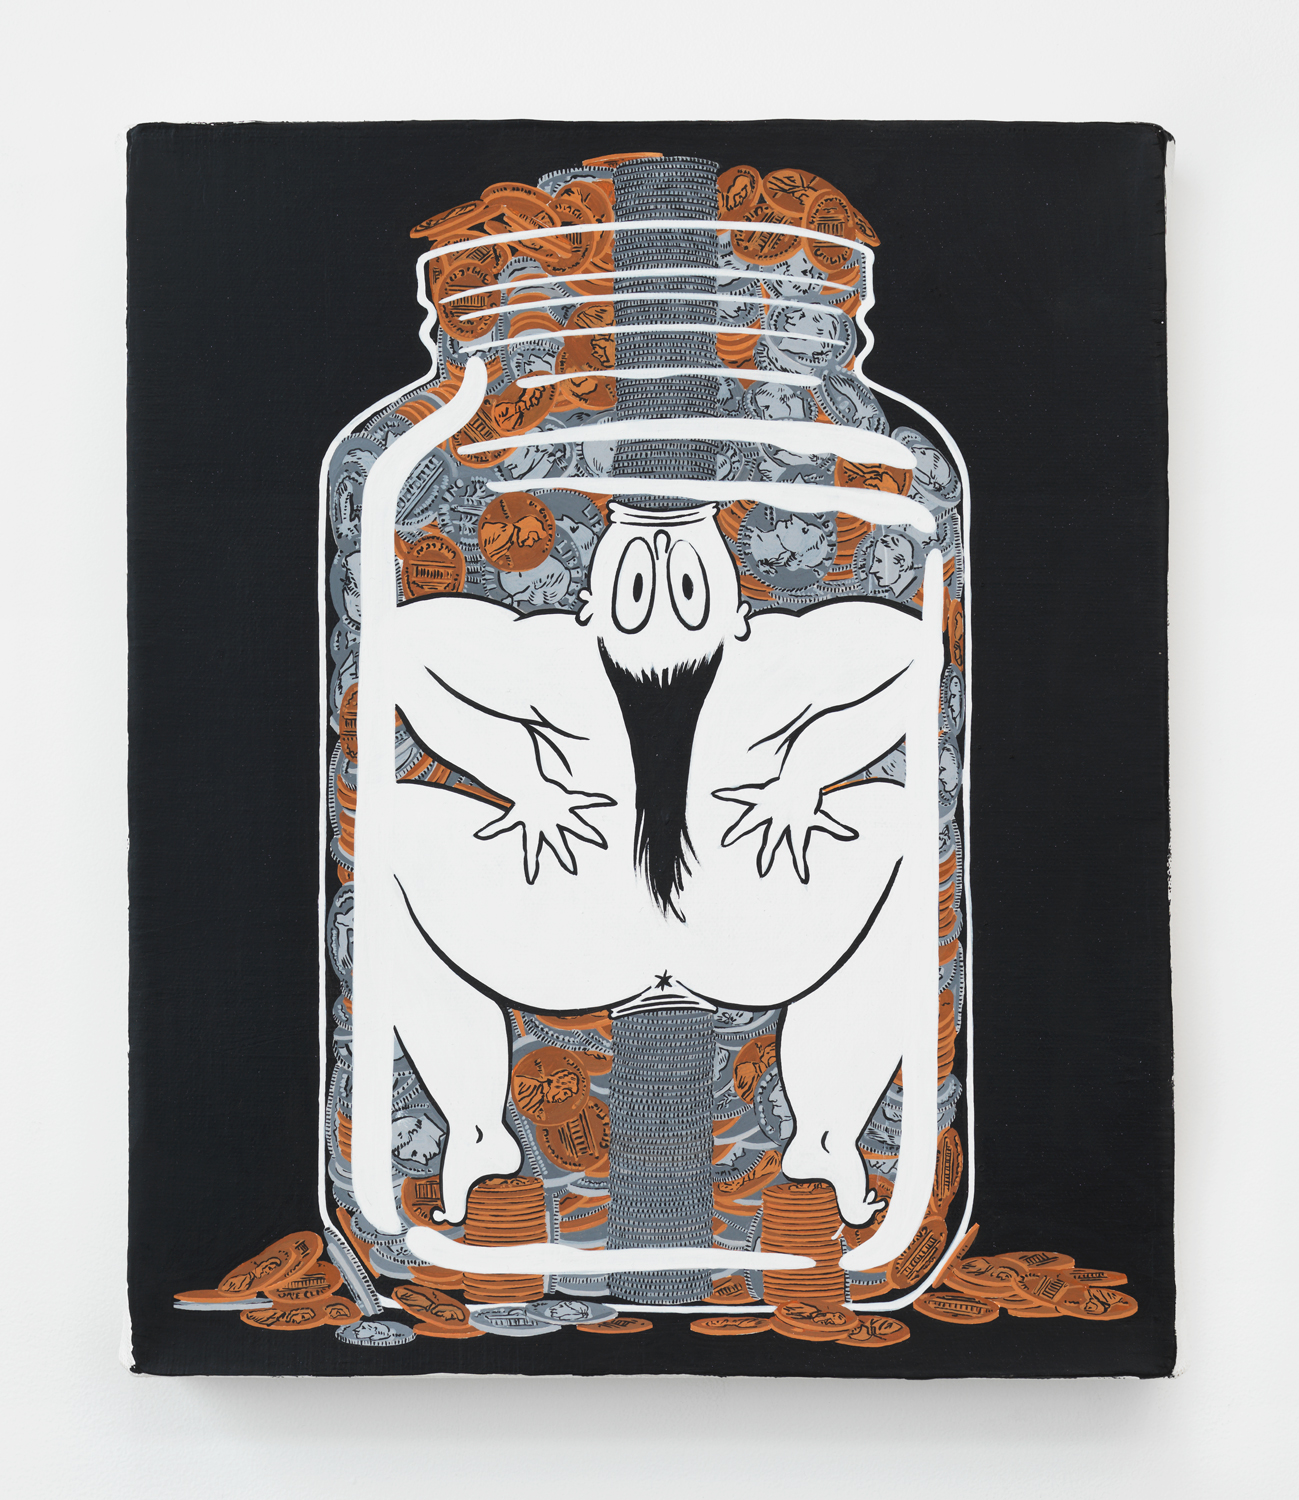 Ebecho Muslimova, Untitled (Jar), 2017, acrylic and gouache on canvas, 12h x 10w in.